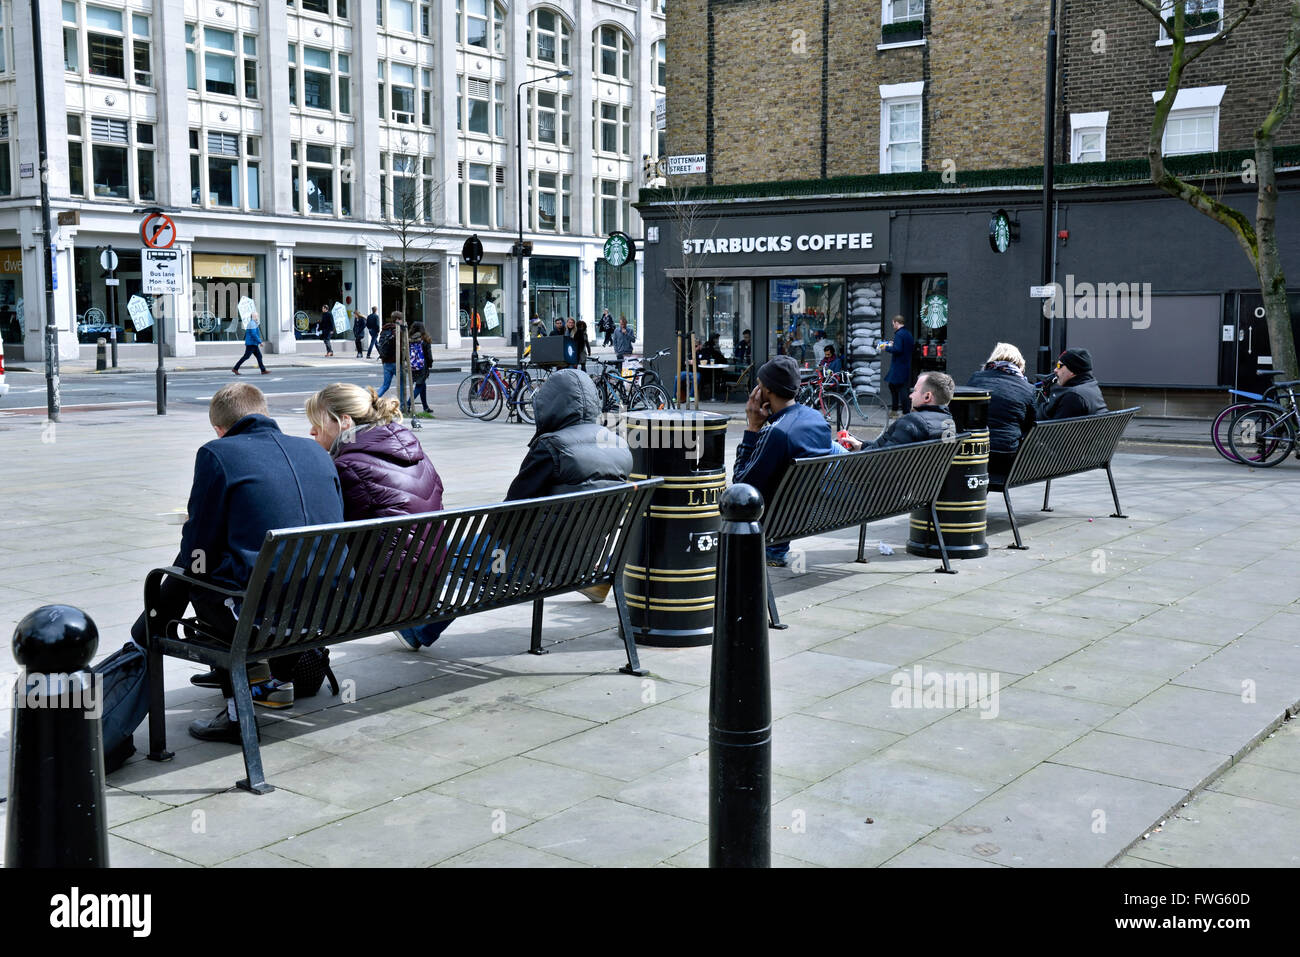 People sitting on benches in public open space off Tottenham Court Road, London Borough of Camden England Britain - Stock Image